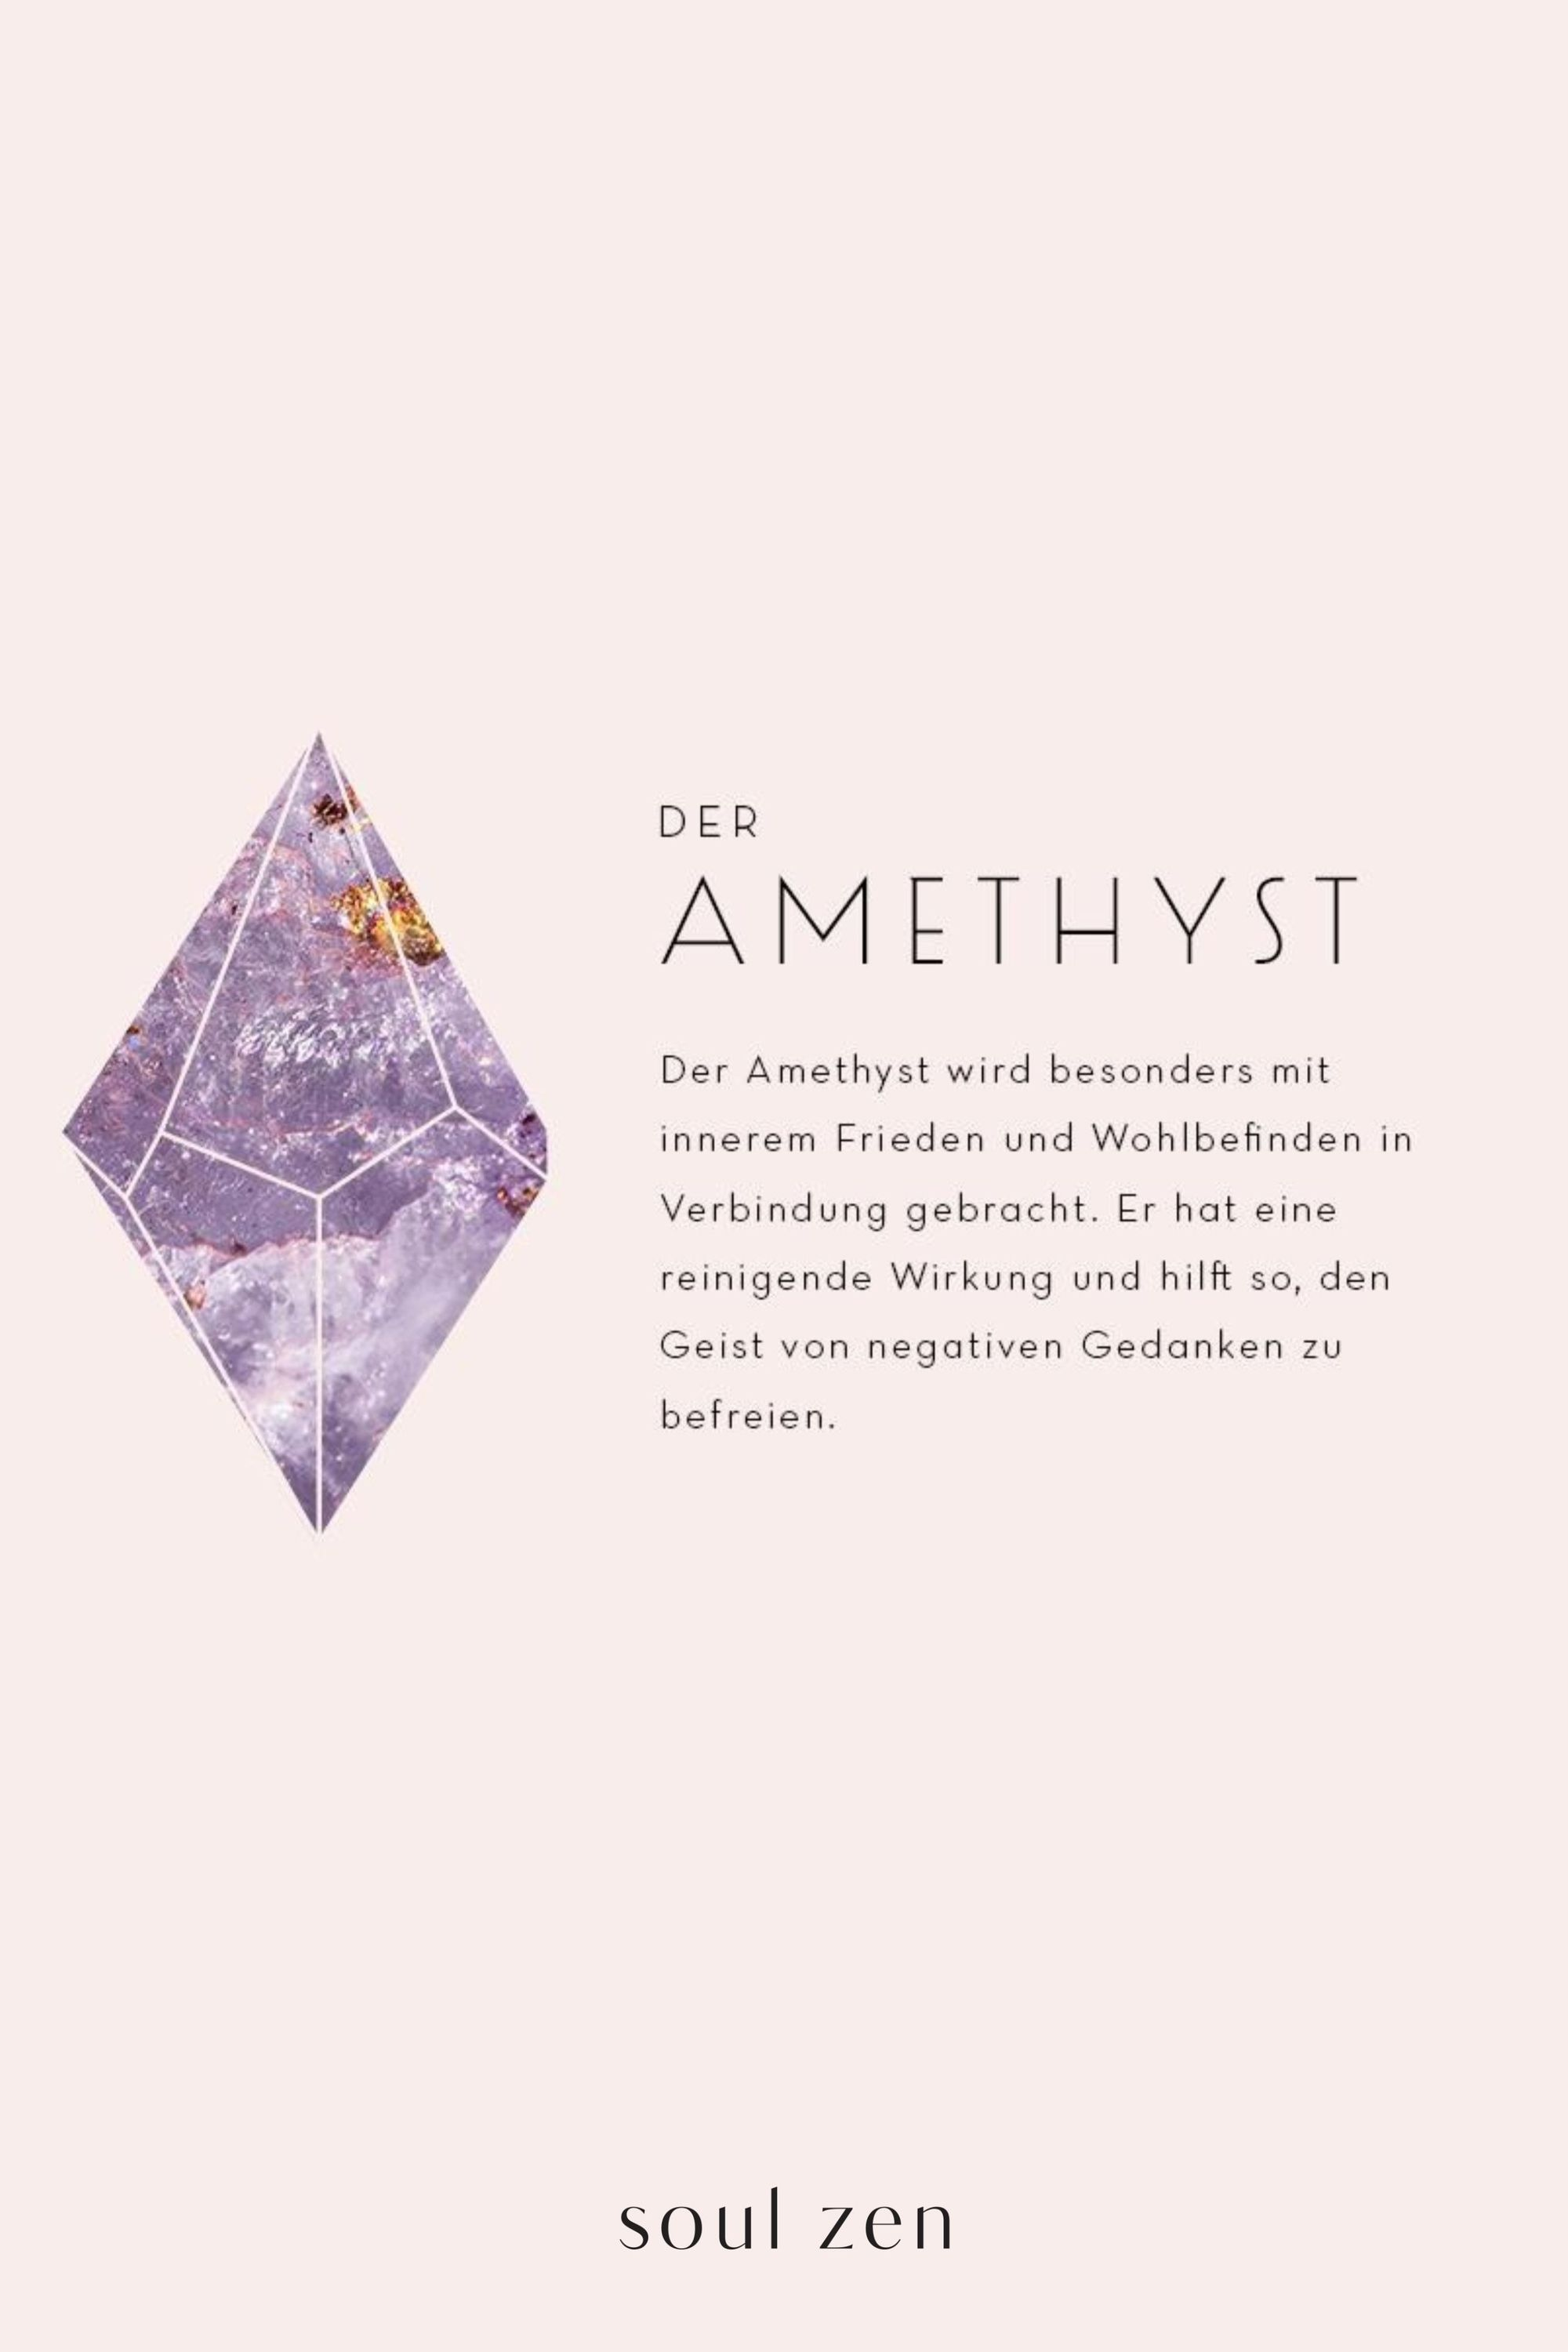 Photo of AMETHYST The amethyst is especially used with inner peace and well-being in …